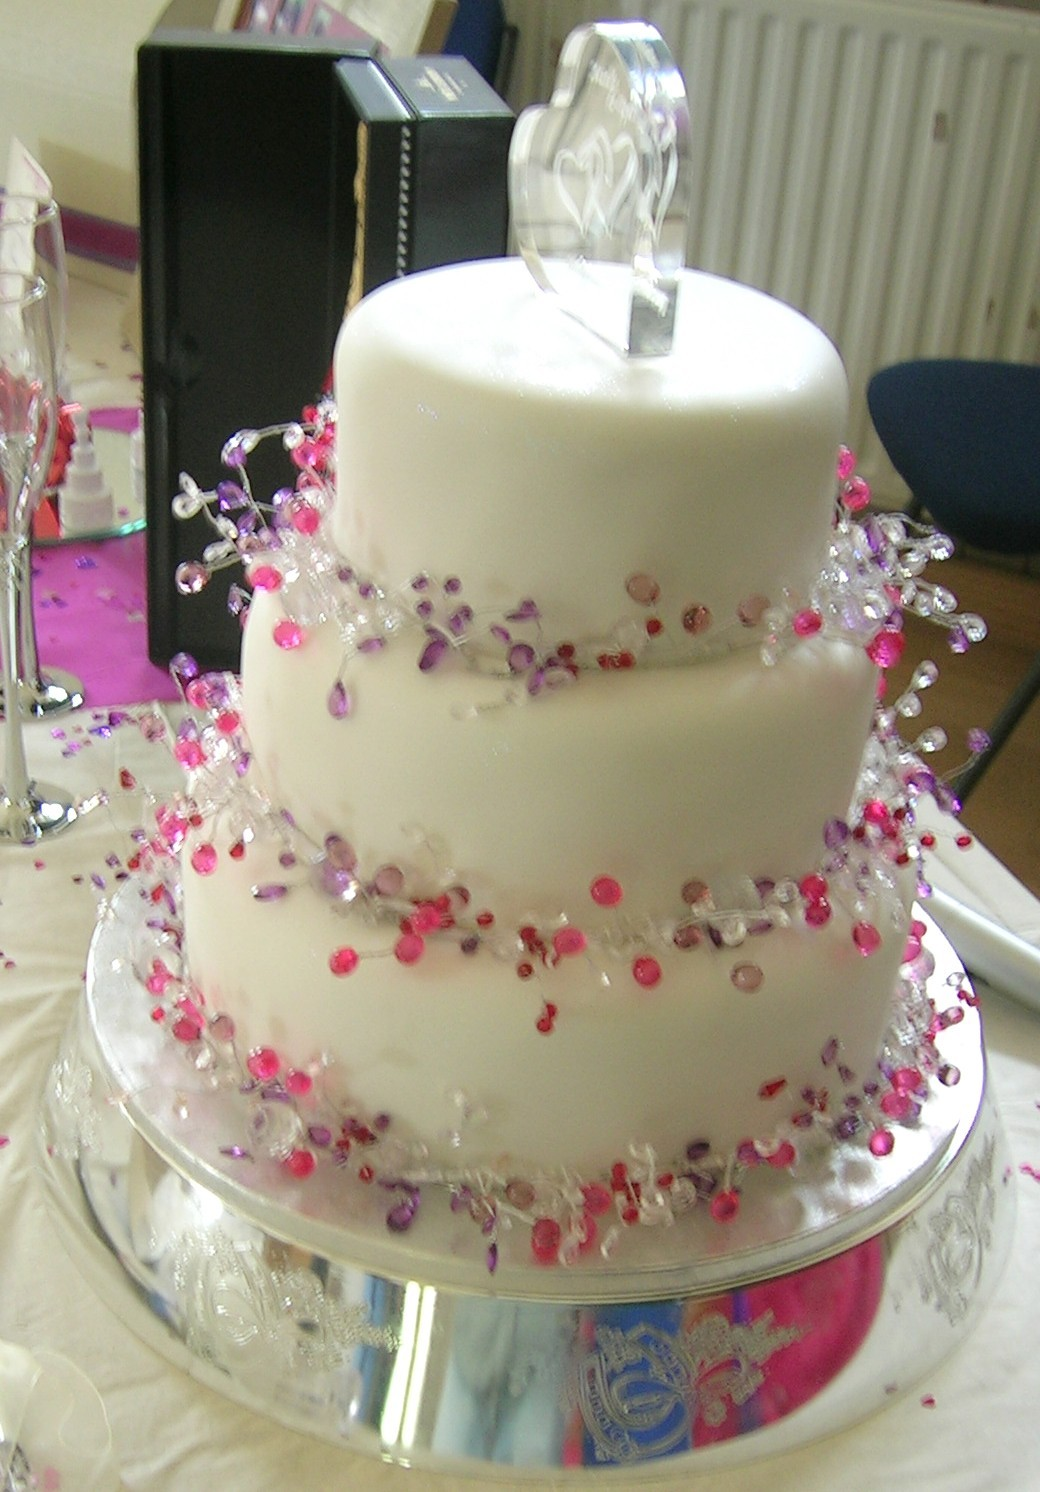 Cake Decoration Accessories : Wedding Pictures Wedding Photos: Wedding Cake Decorating ...